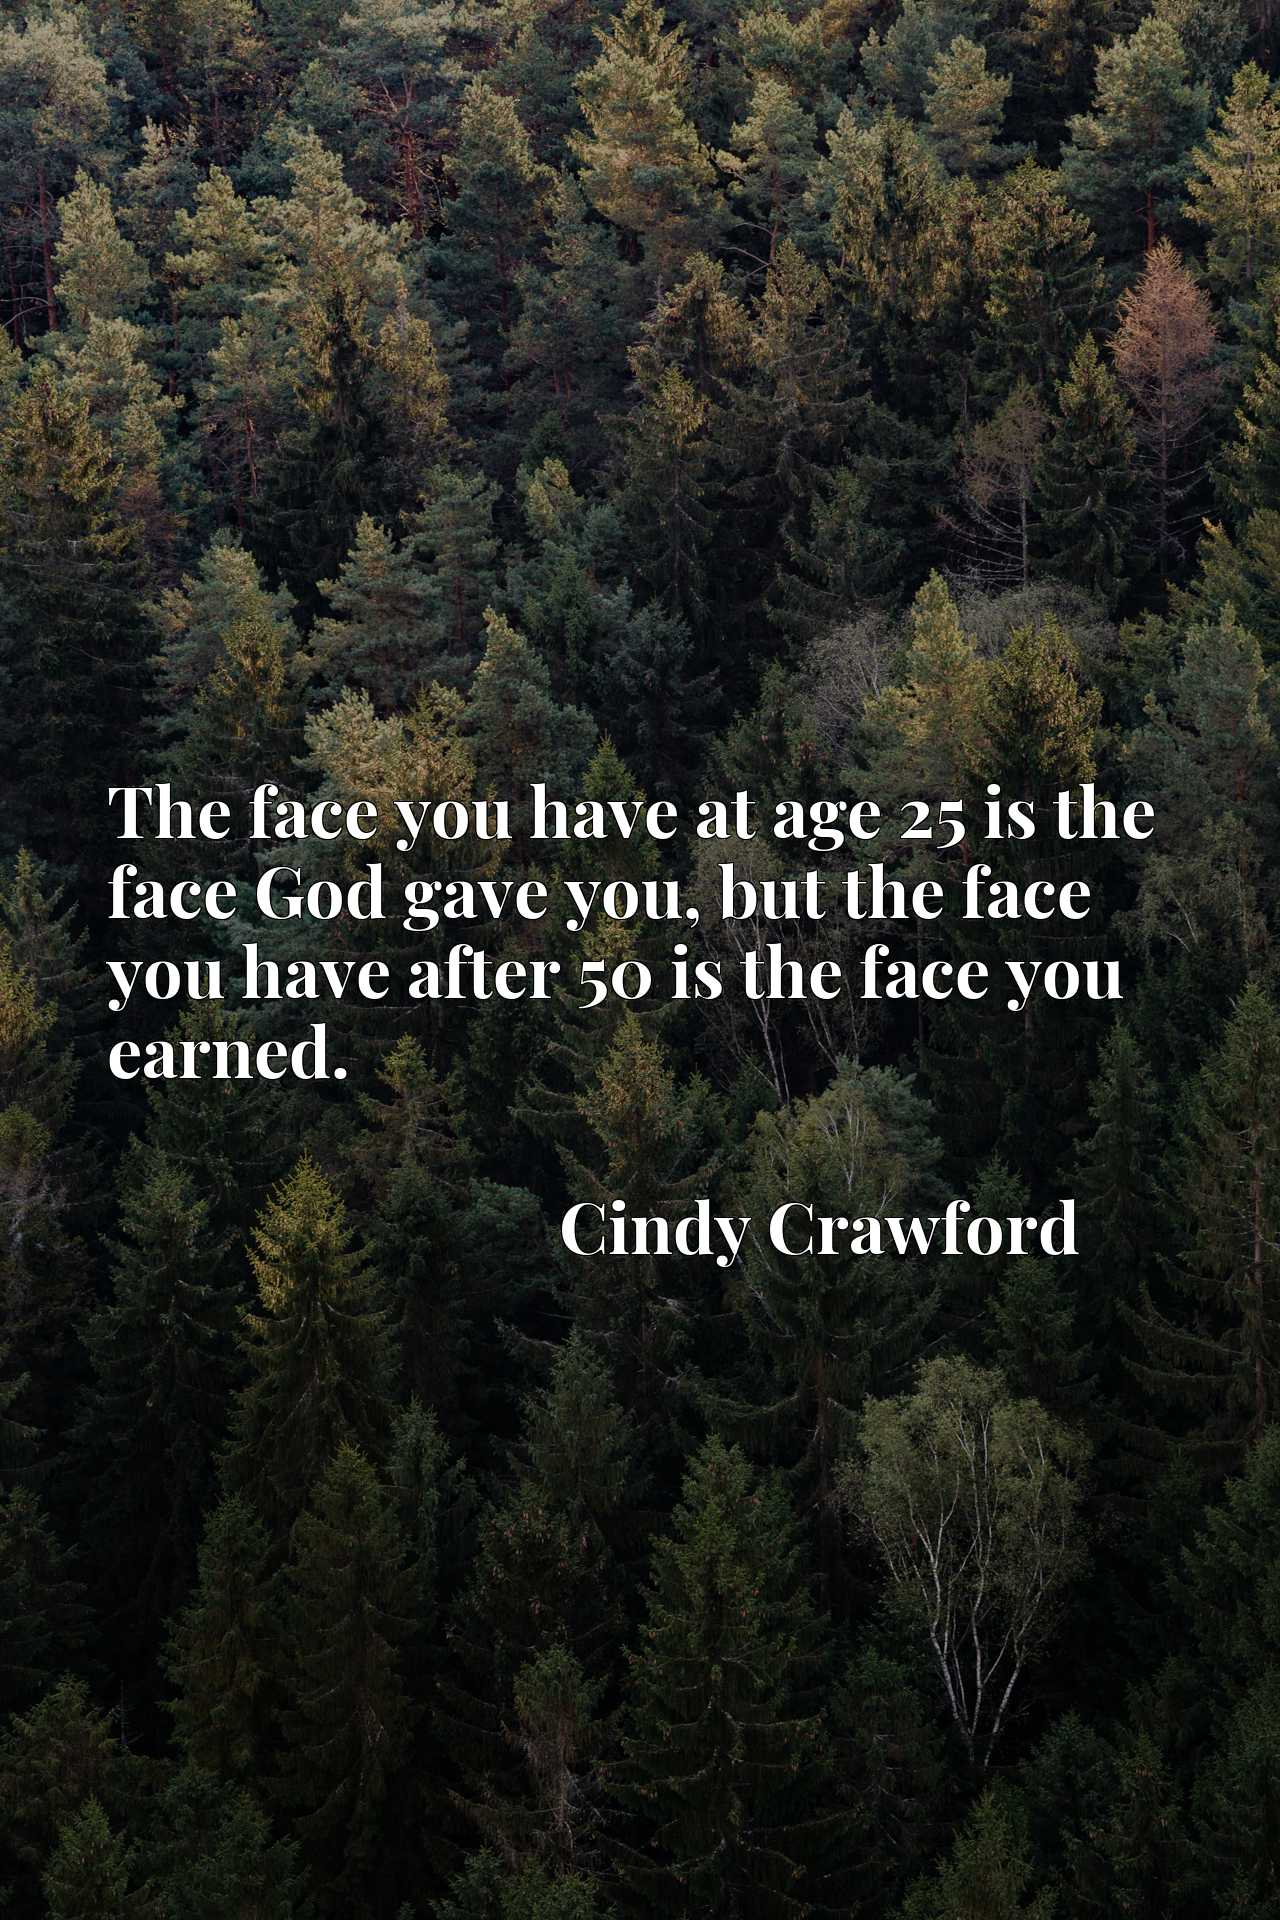 The face you have at age 25 is the face God gave you, but the face you have after 50 is the face you earned.